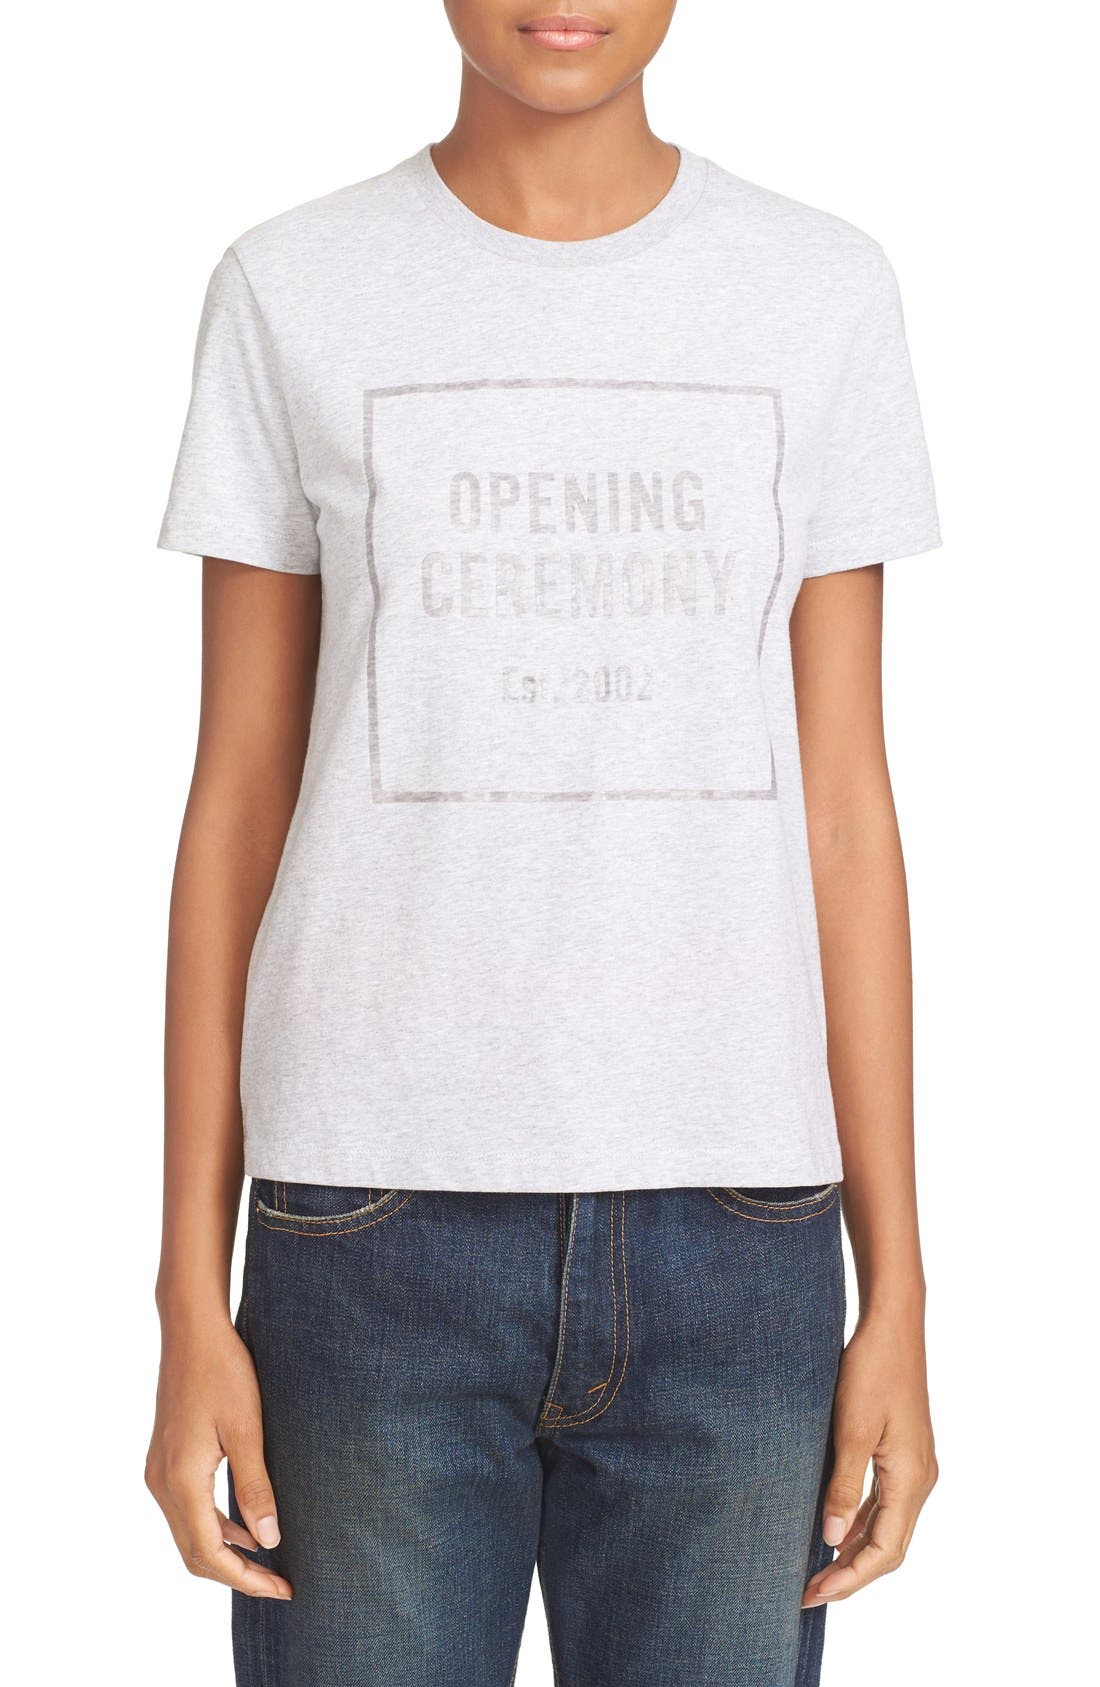 Opening Ceremony 'OC Box' Logo Tee